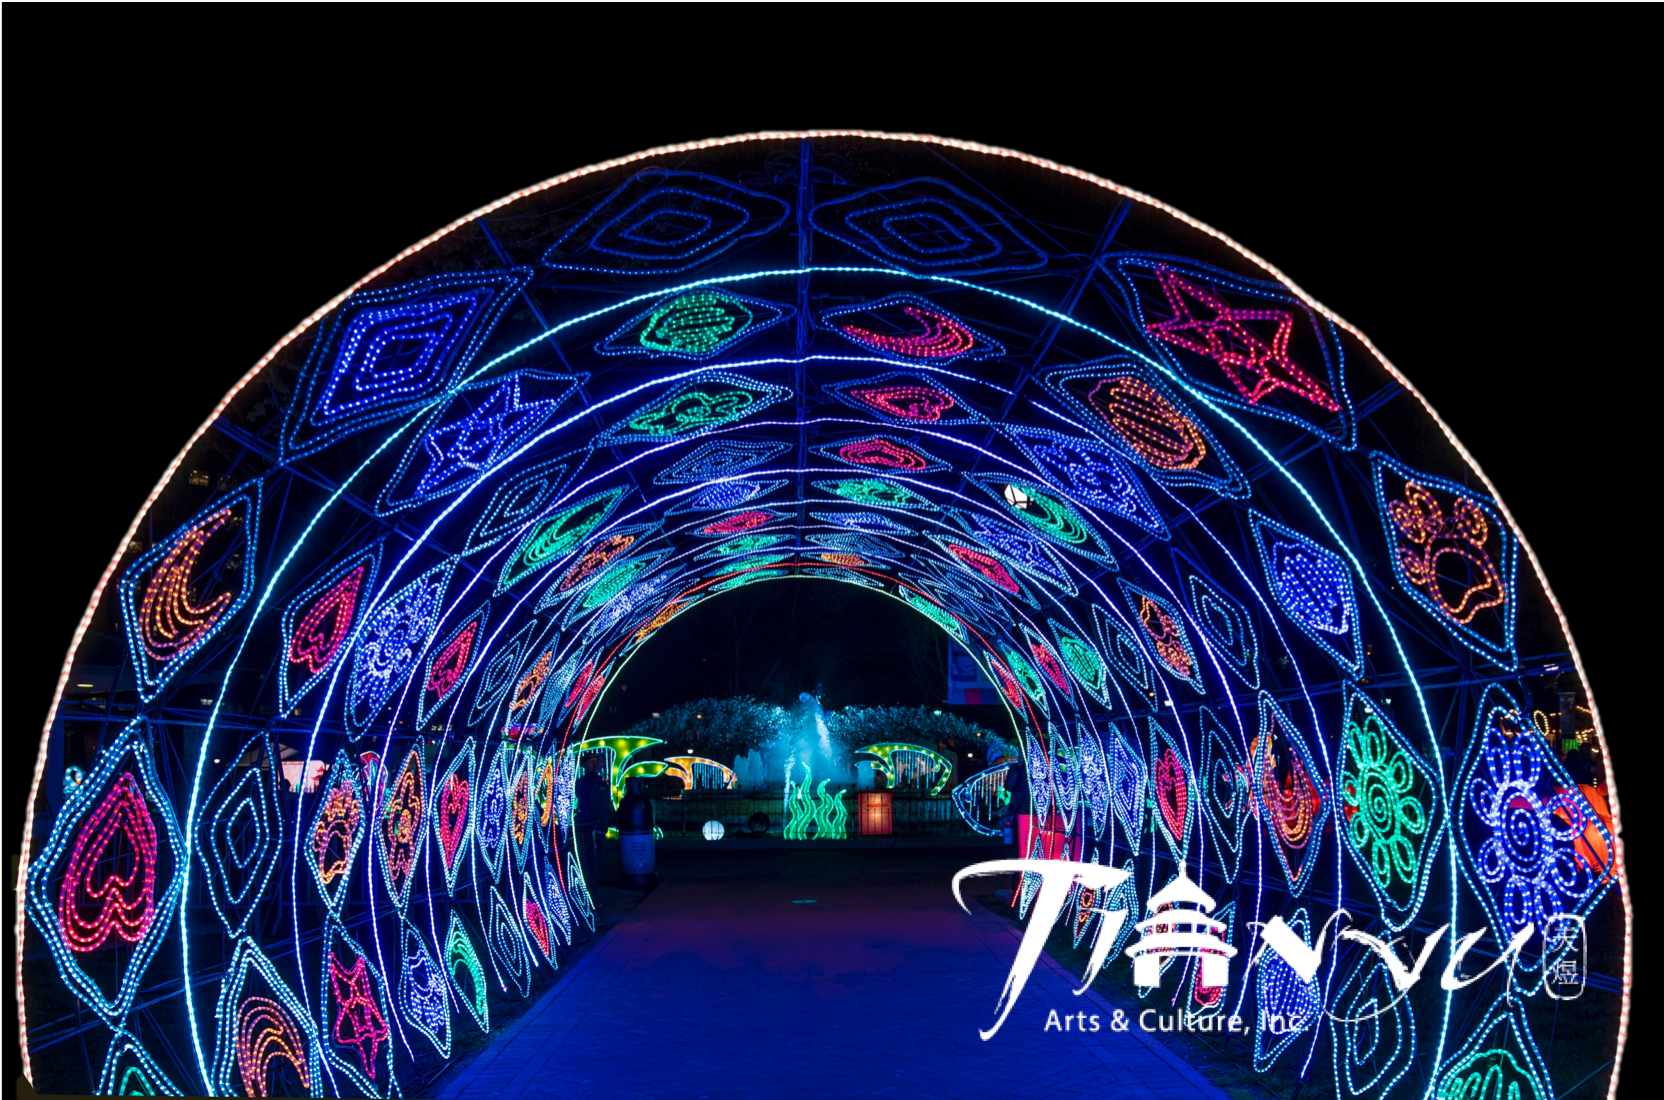 Vibrant colorful tunnel full of animal prints.